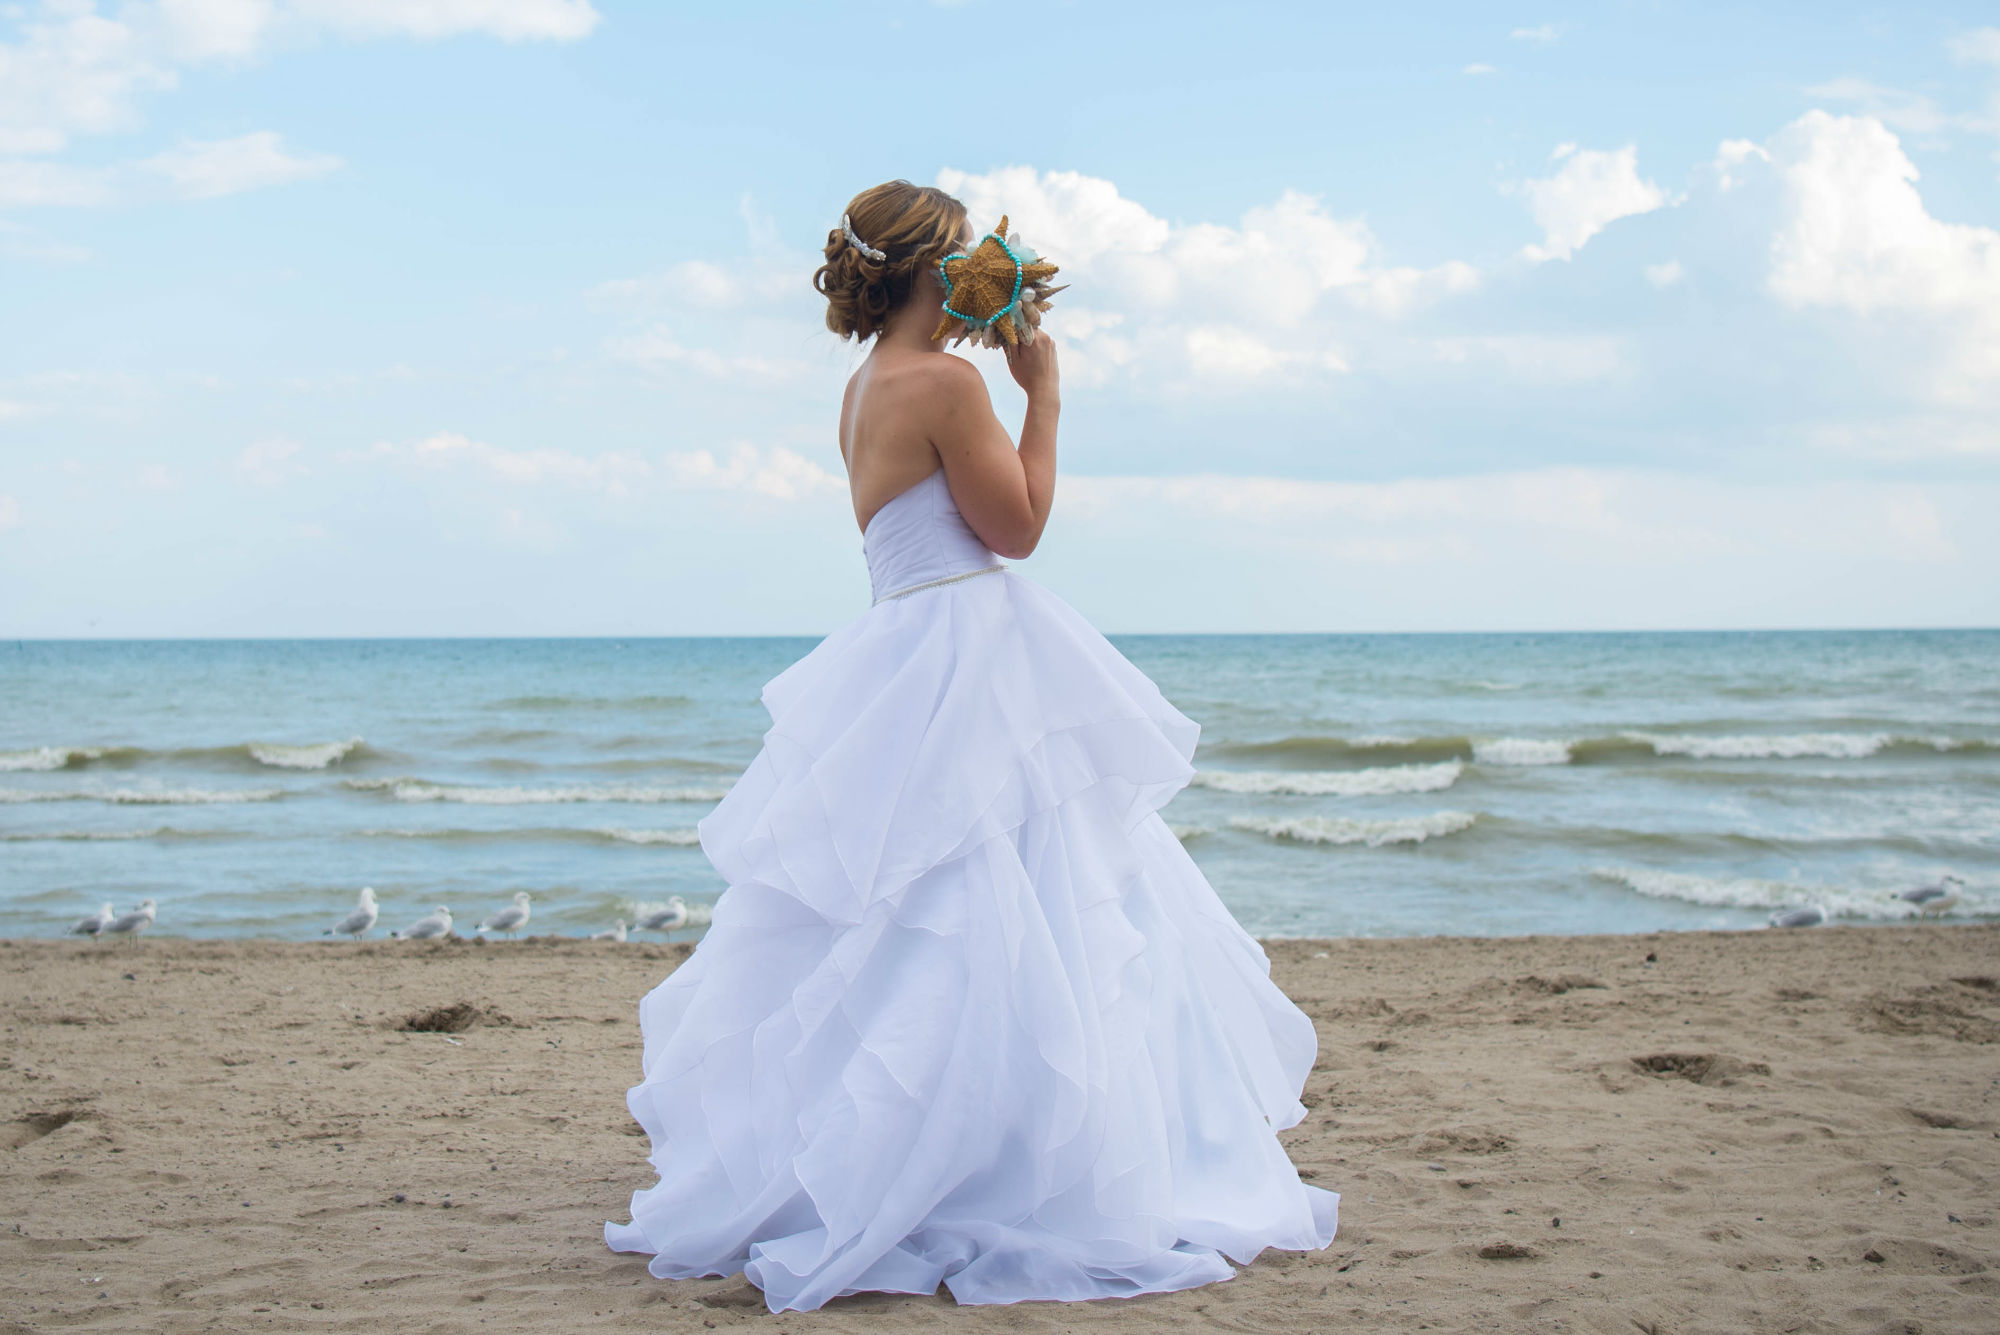 Ali And Her Sea Shell Bouquet